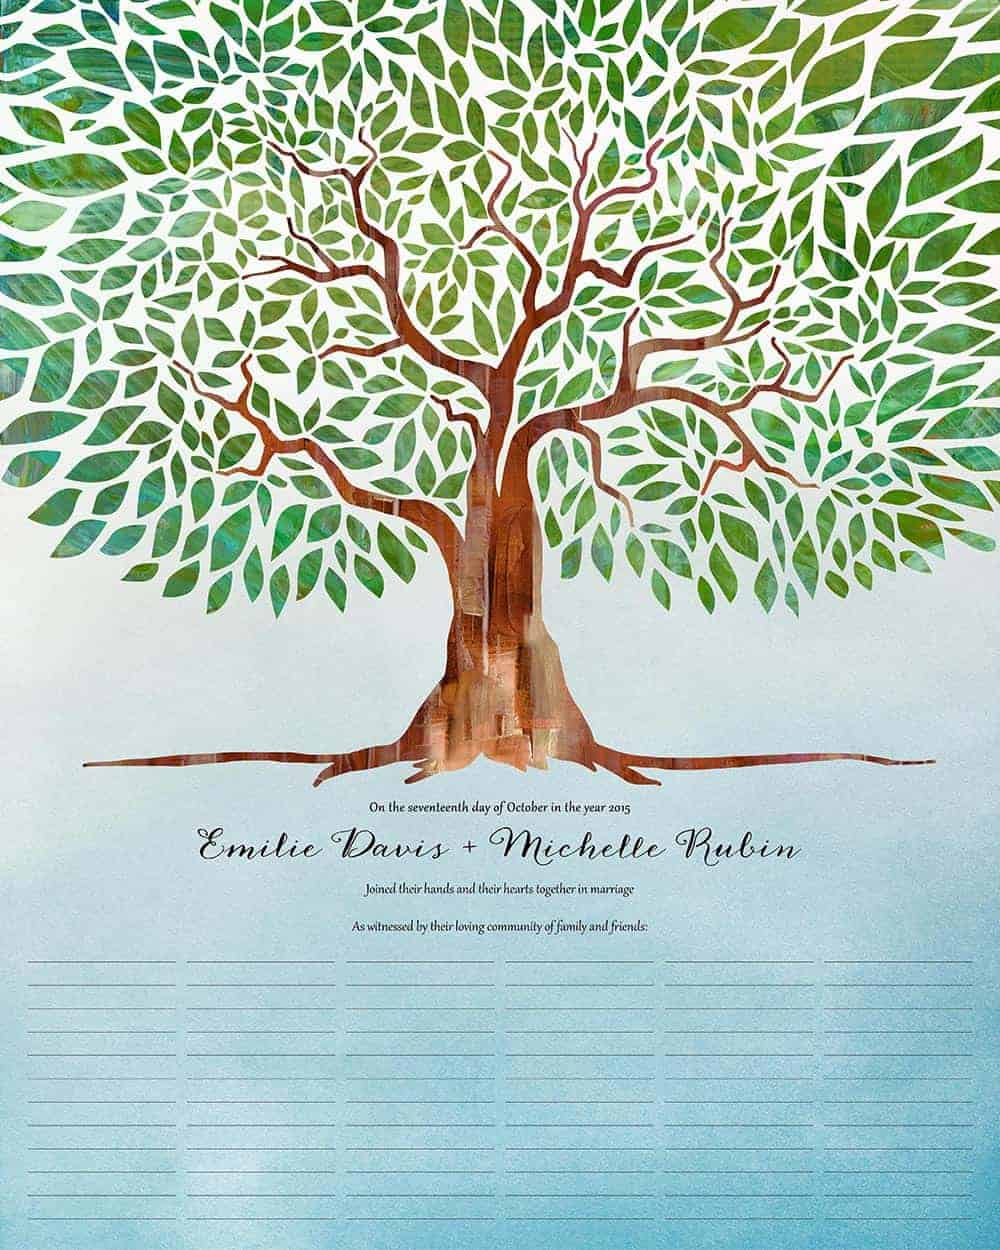 tree of life i am my beloveds qwc wedding certificate Tree of Life I am my beloved s wedding certificate